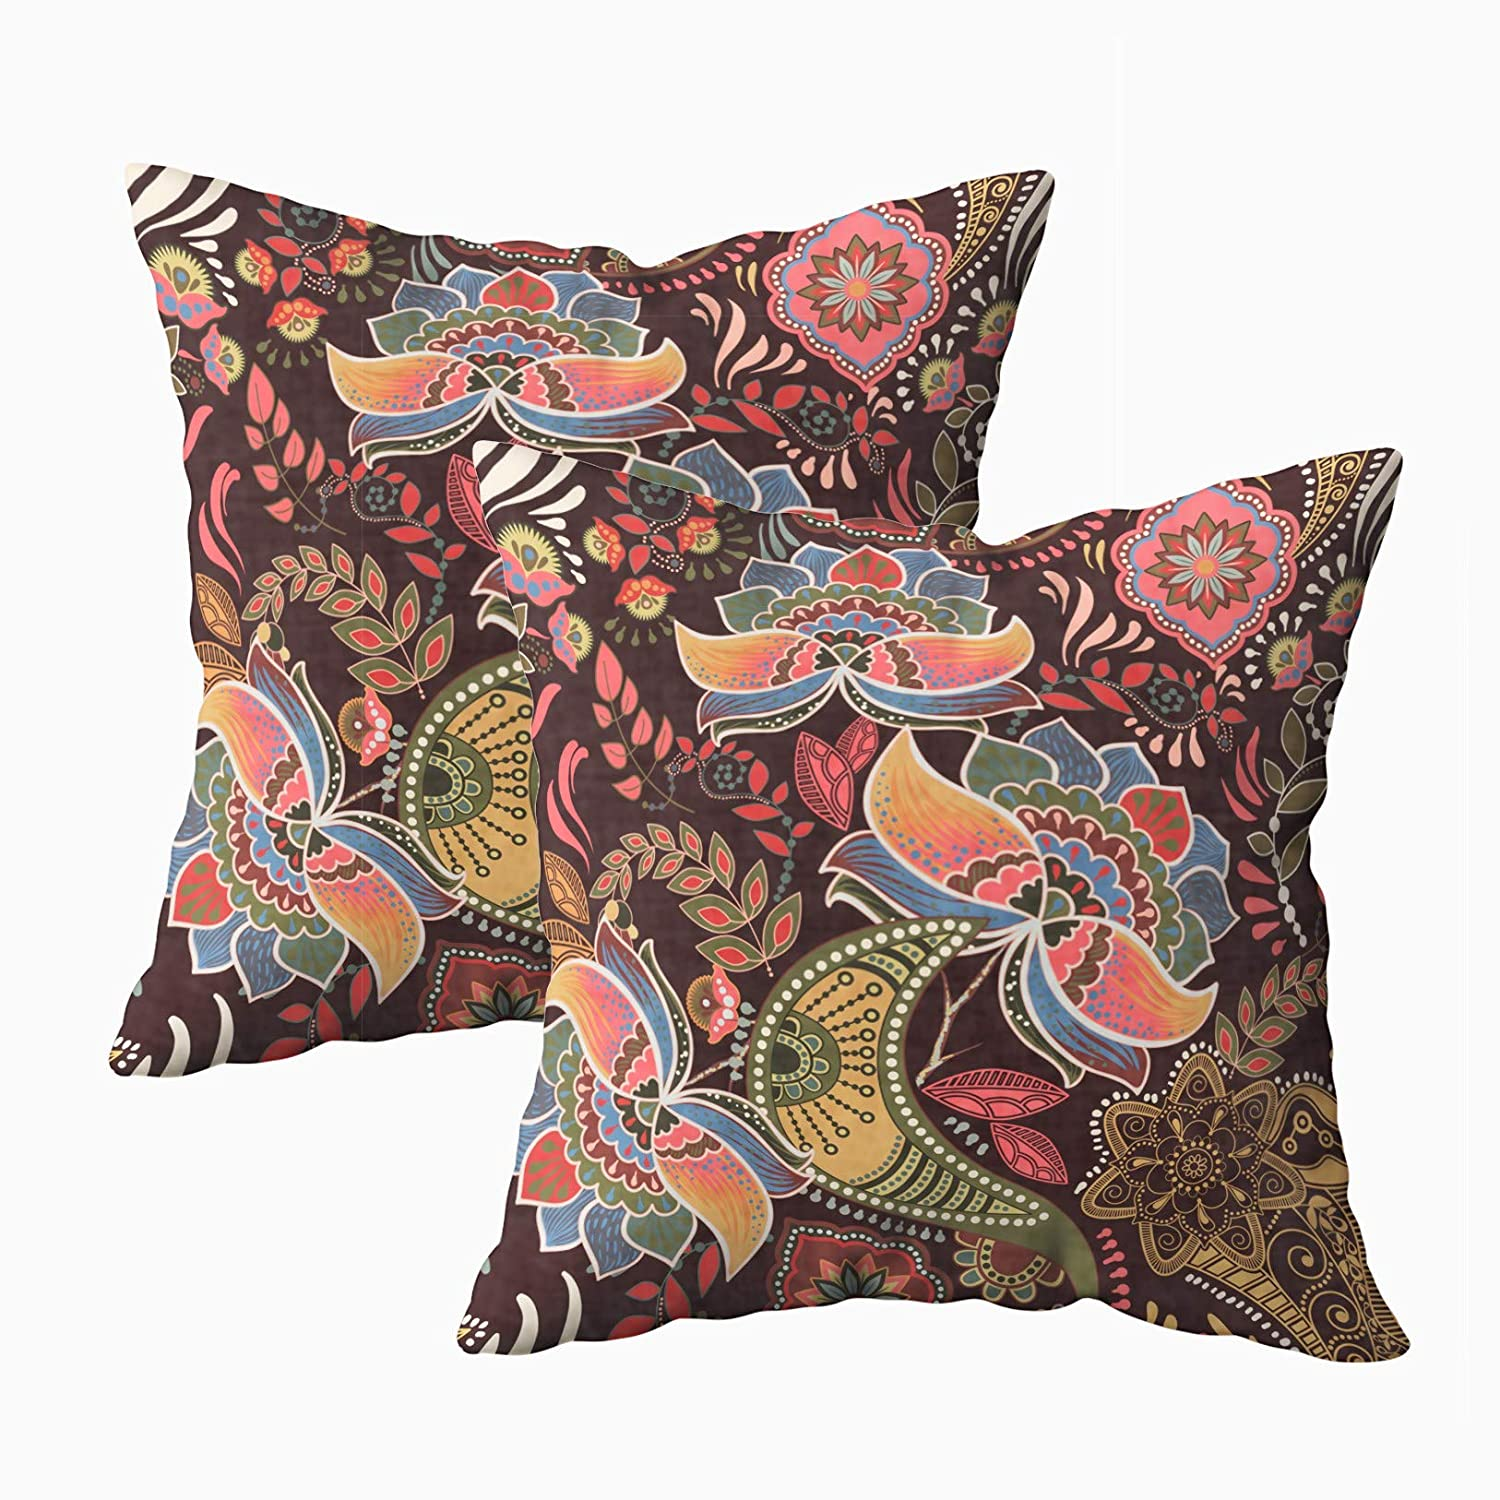 Musesh Pack of 2 leopard paisley pattern print Cushions Case Throw Pillow Cover Sofa Home Decorative Pillowslip Gift Ideas Household Pillowcase Zippered Pillow Covers 18X18Inch